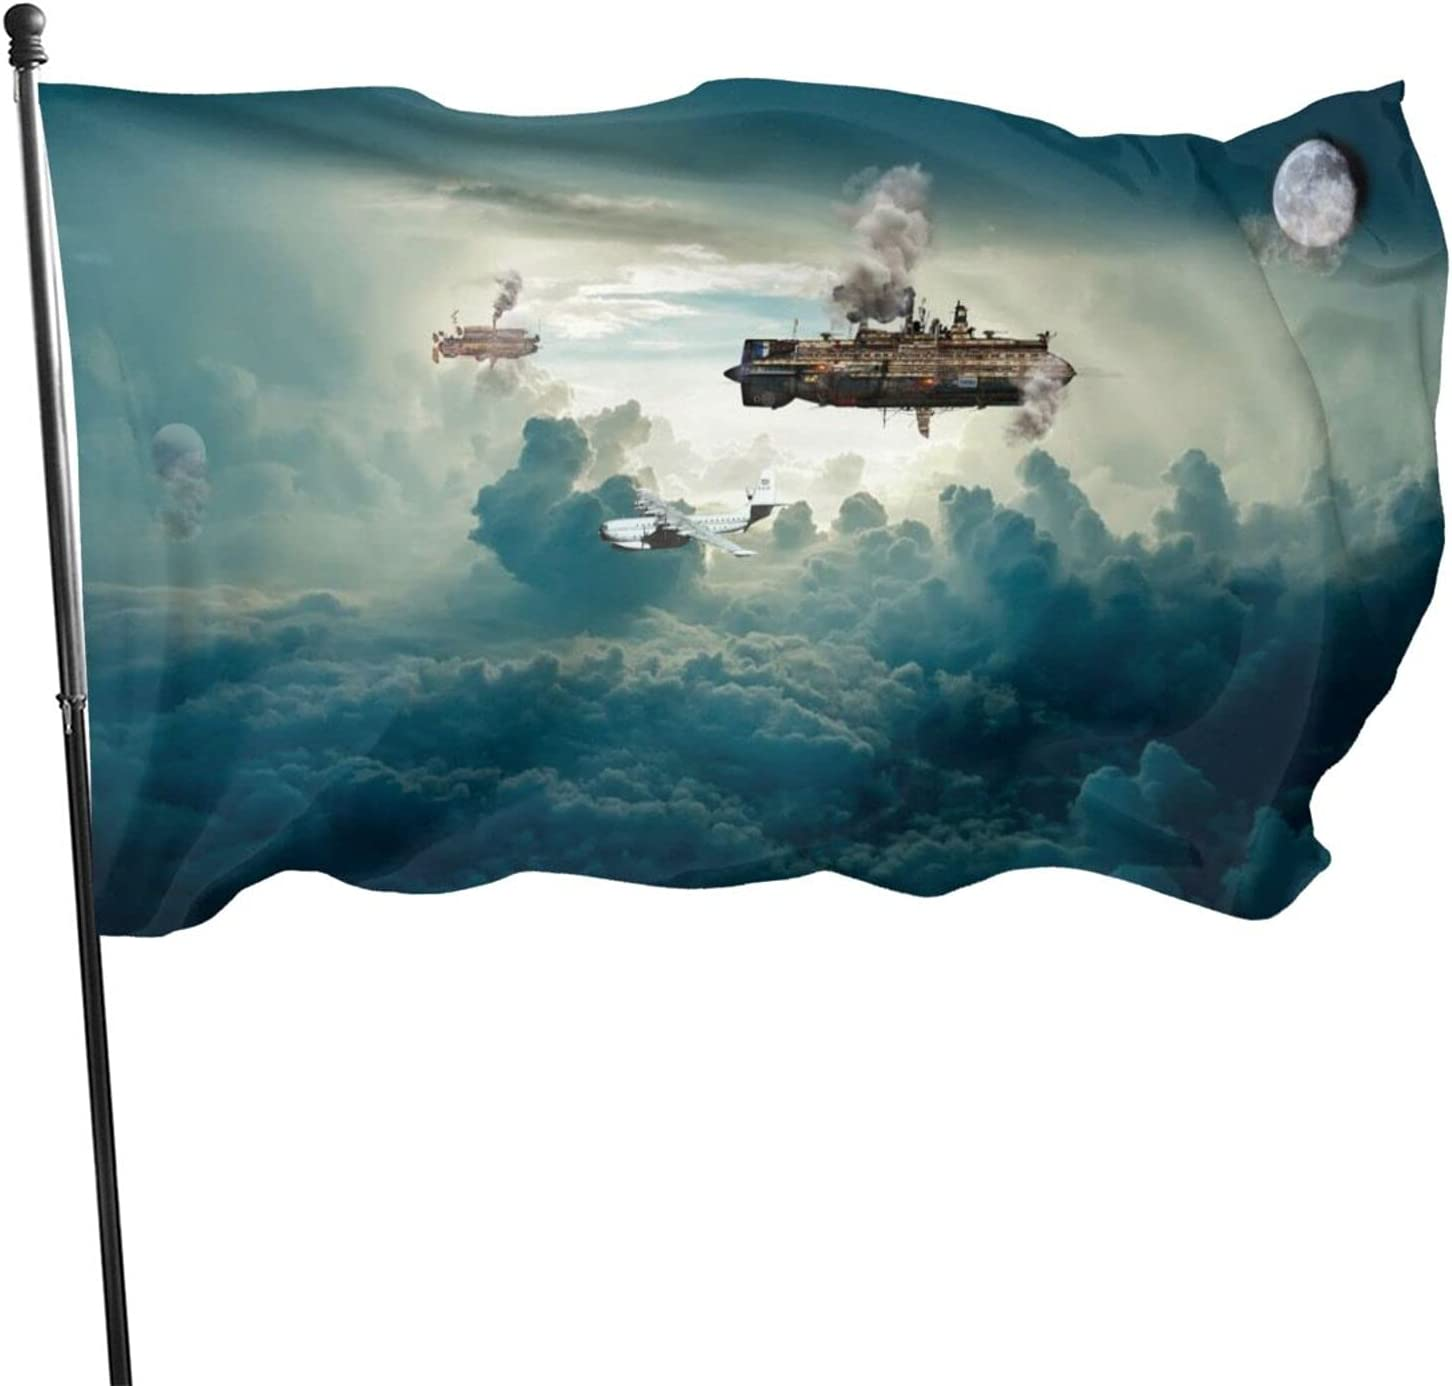 pengyong Garden Flags Airships Clouds Steampunk House Decorations for Indoor & Outdoor,Durable Yard Flag(35 Ft)